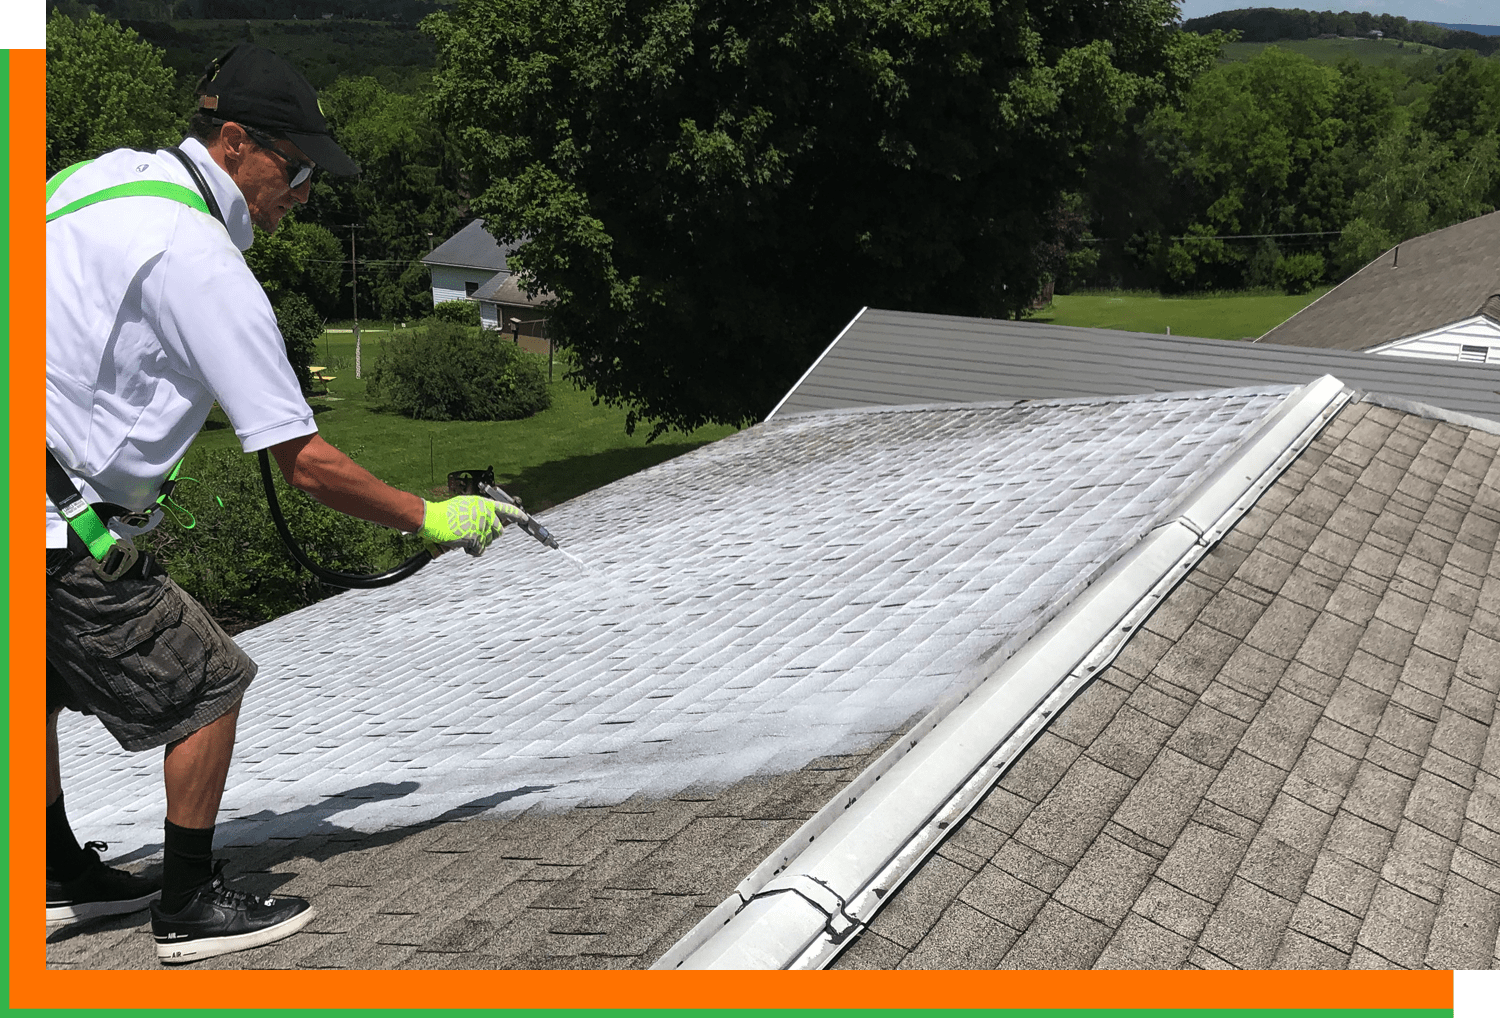 Tech Spraying Roof Shingles with Treatment